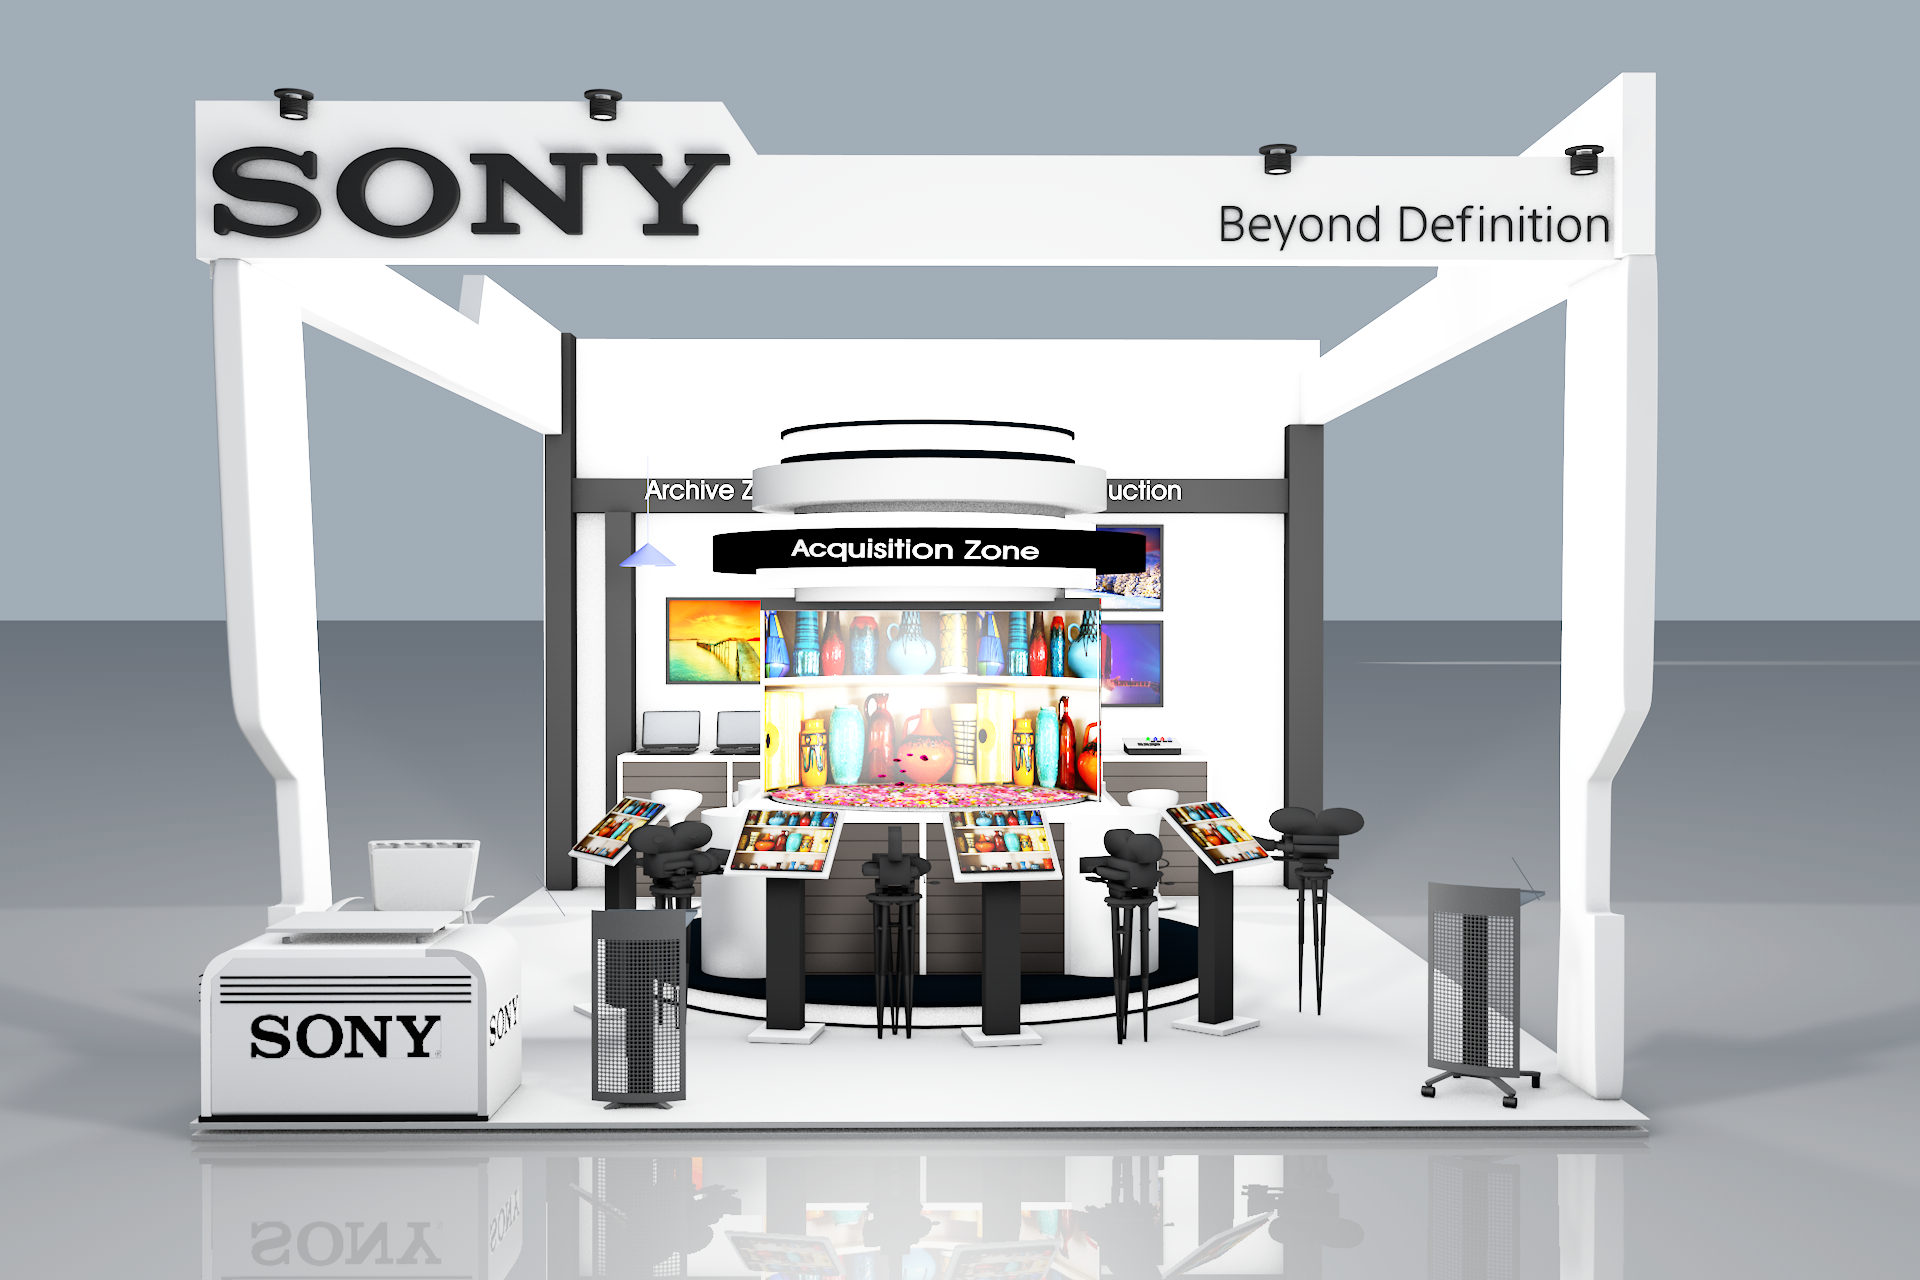 3d Exhibition Booth Design : Sony d exhibition booth design modelling